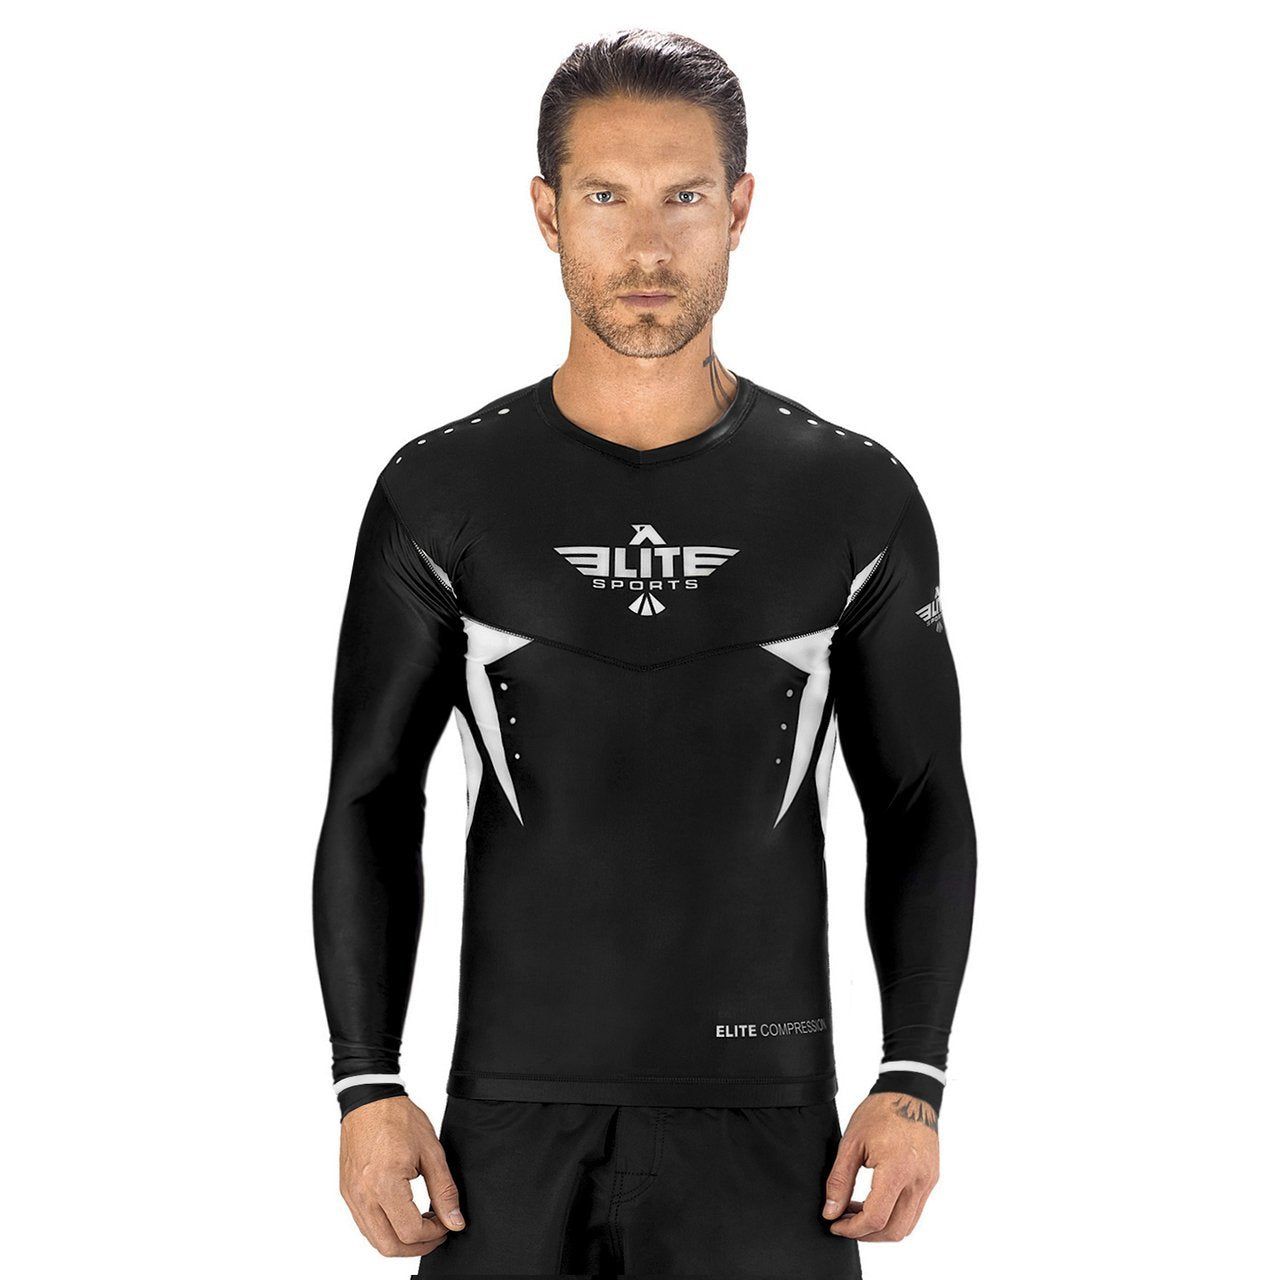 Load image into Gallery viewer, Elite Sports Star Series Sublimation Black/White Long Sleeve Muay Thai Rash Guard